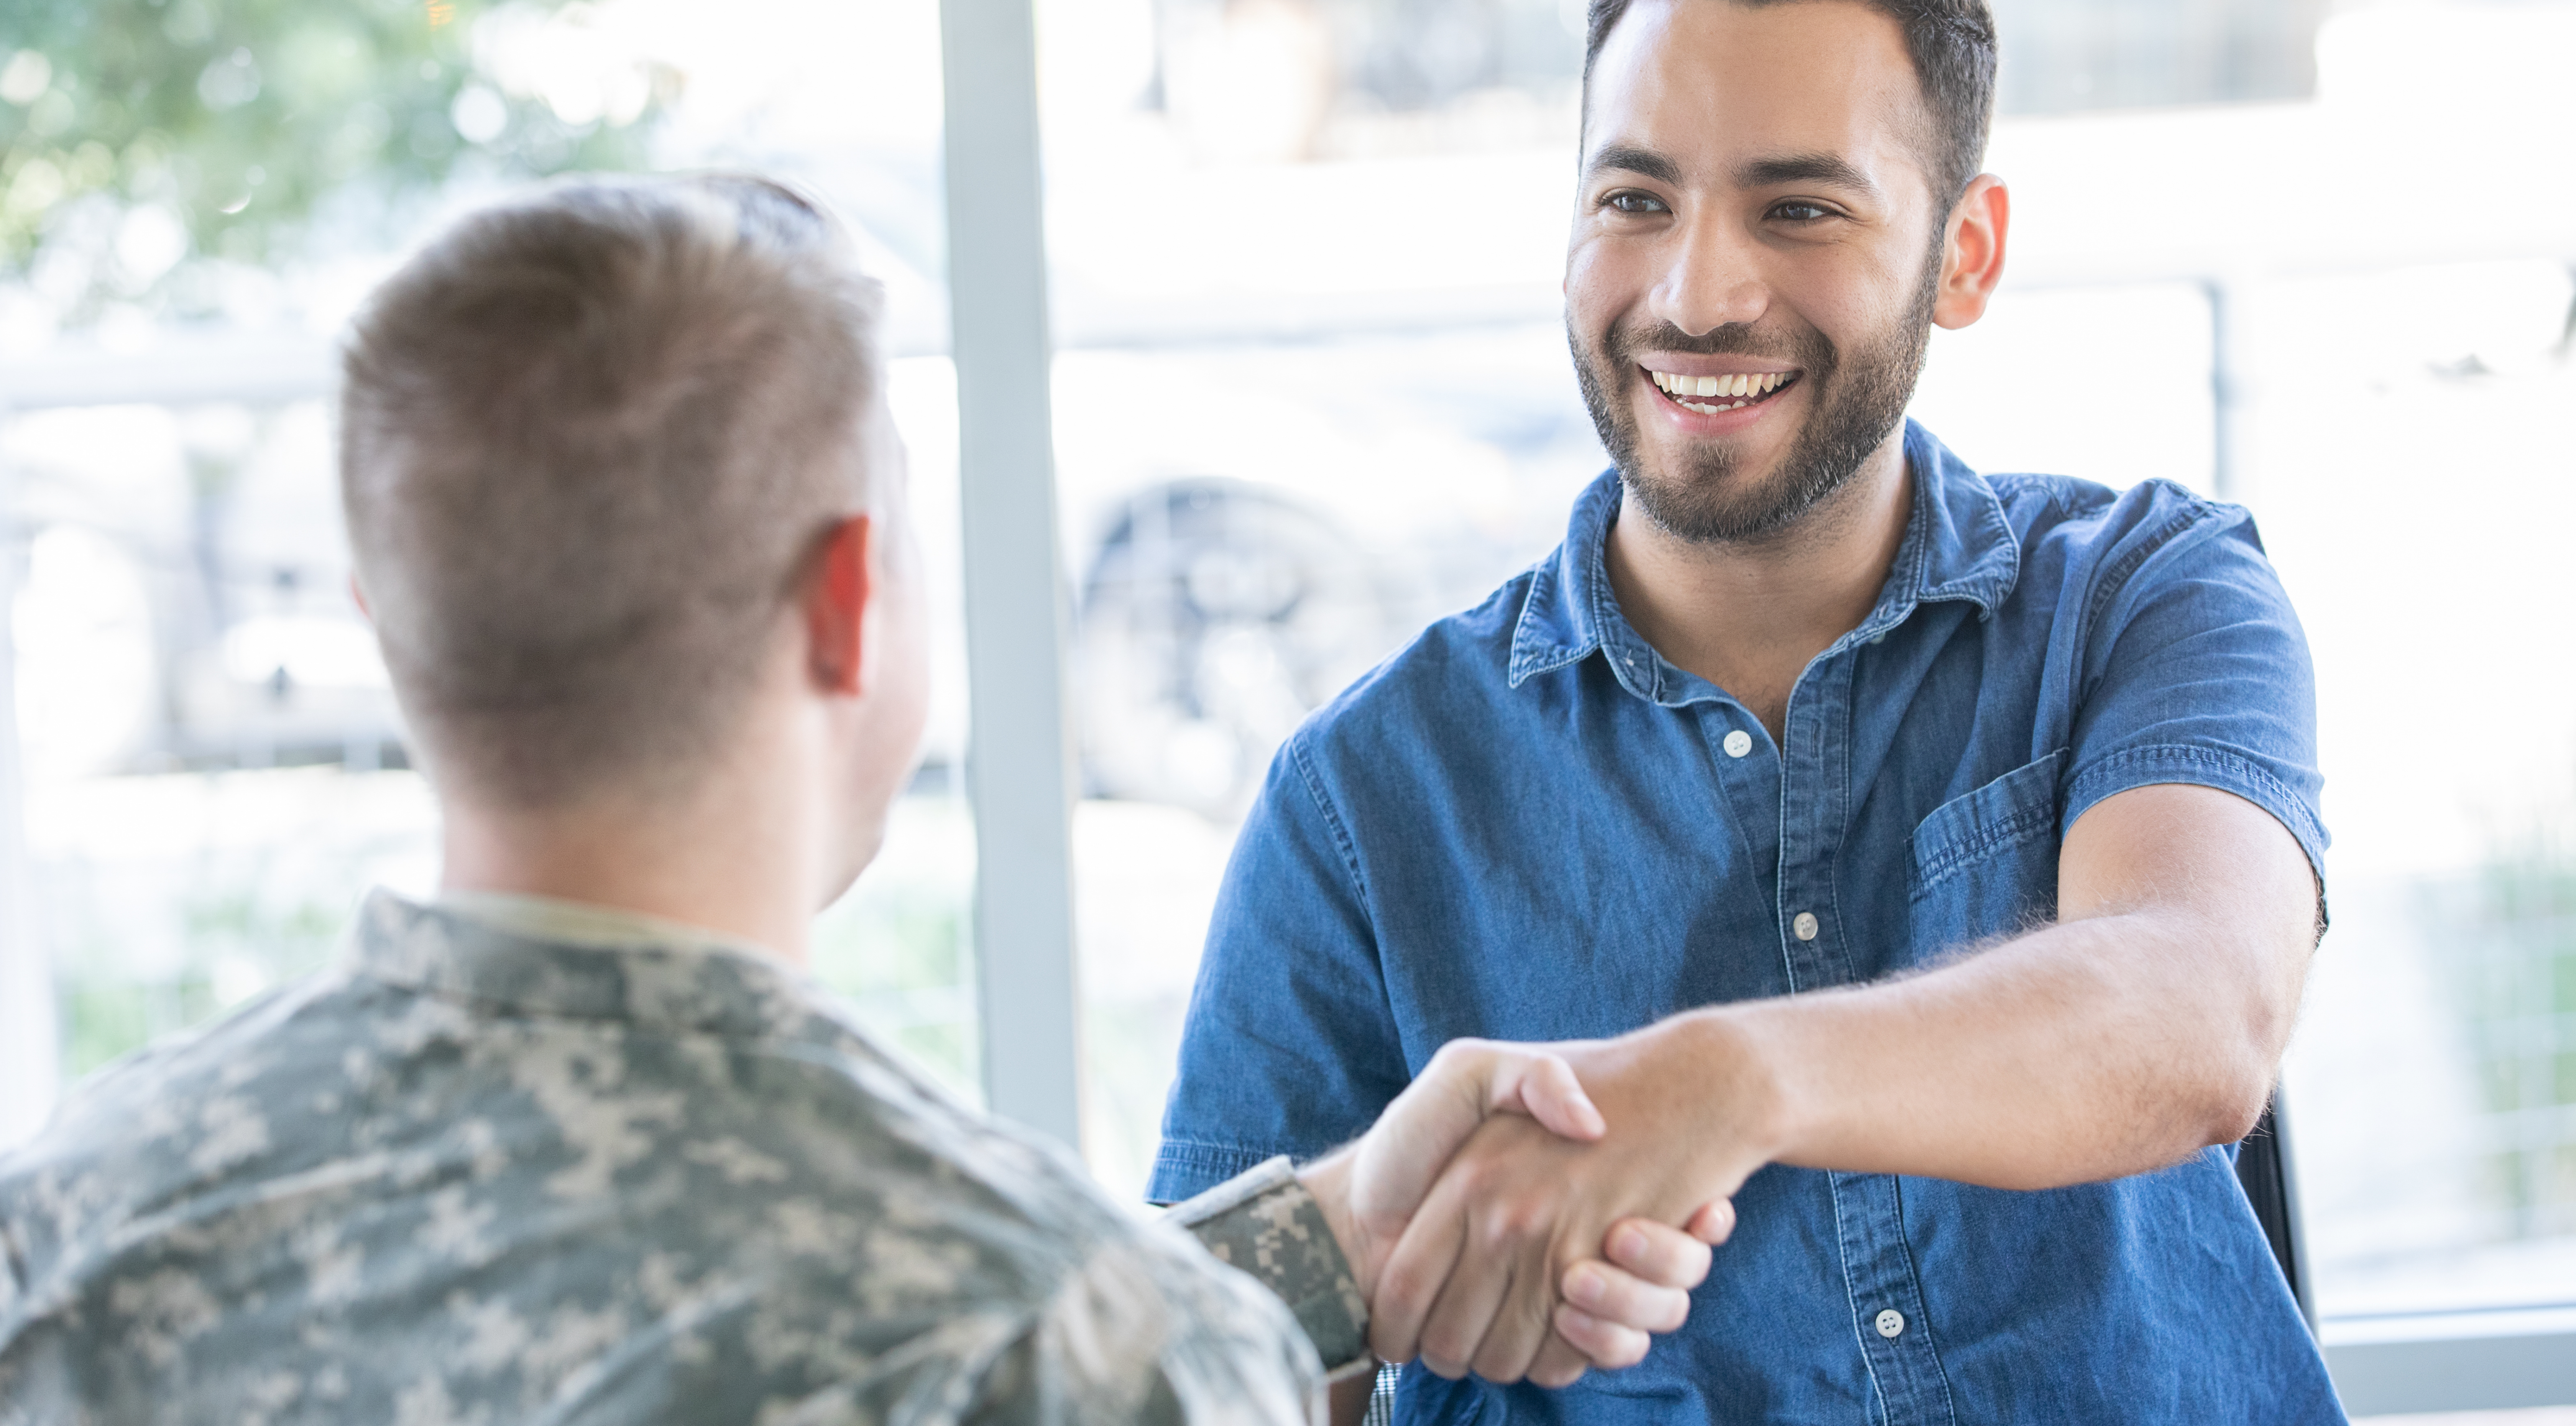 Two men in an interview to represent job hunting support M&E can provide